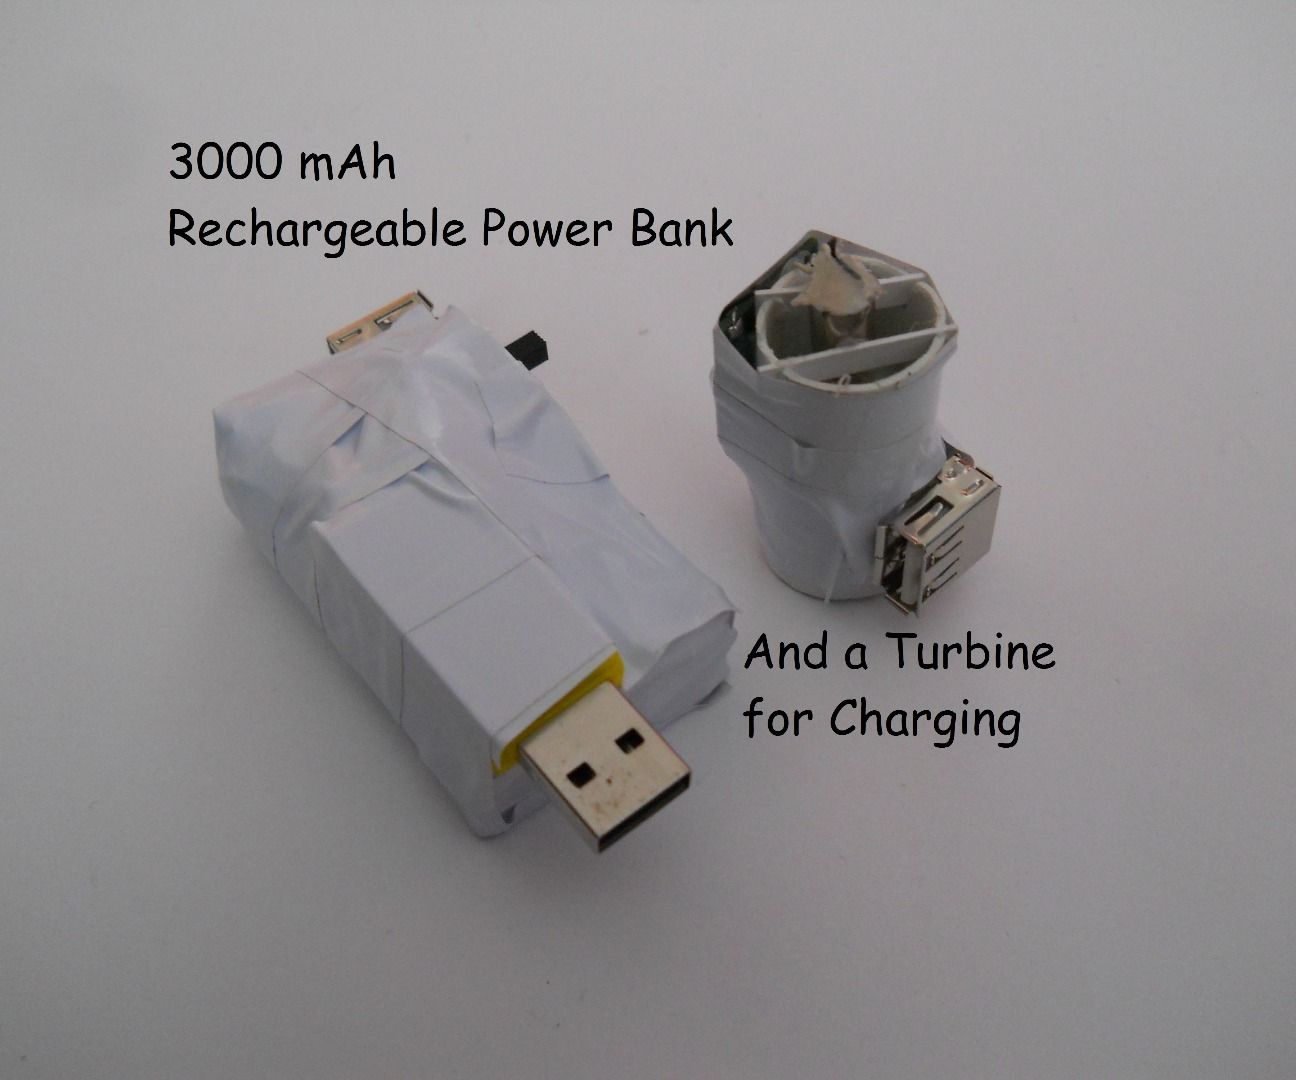 Device Charging with a Multi-turbine (on faucet, wind, bike, while sporting and etc.)